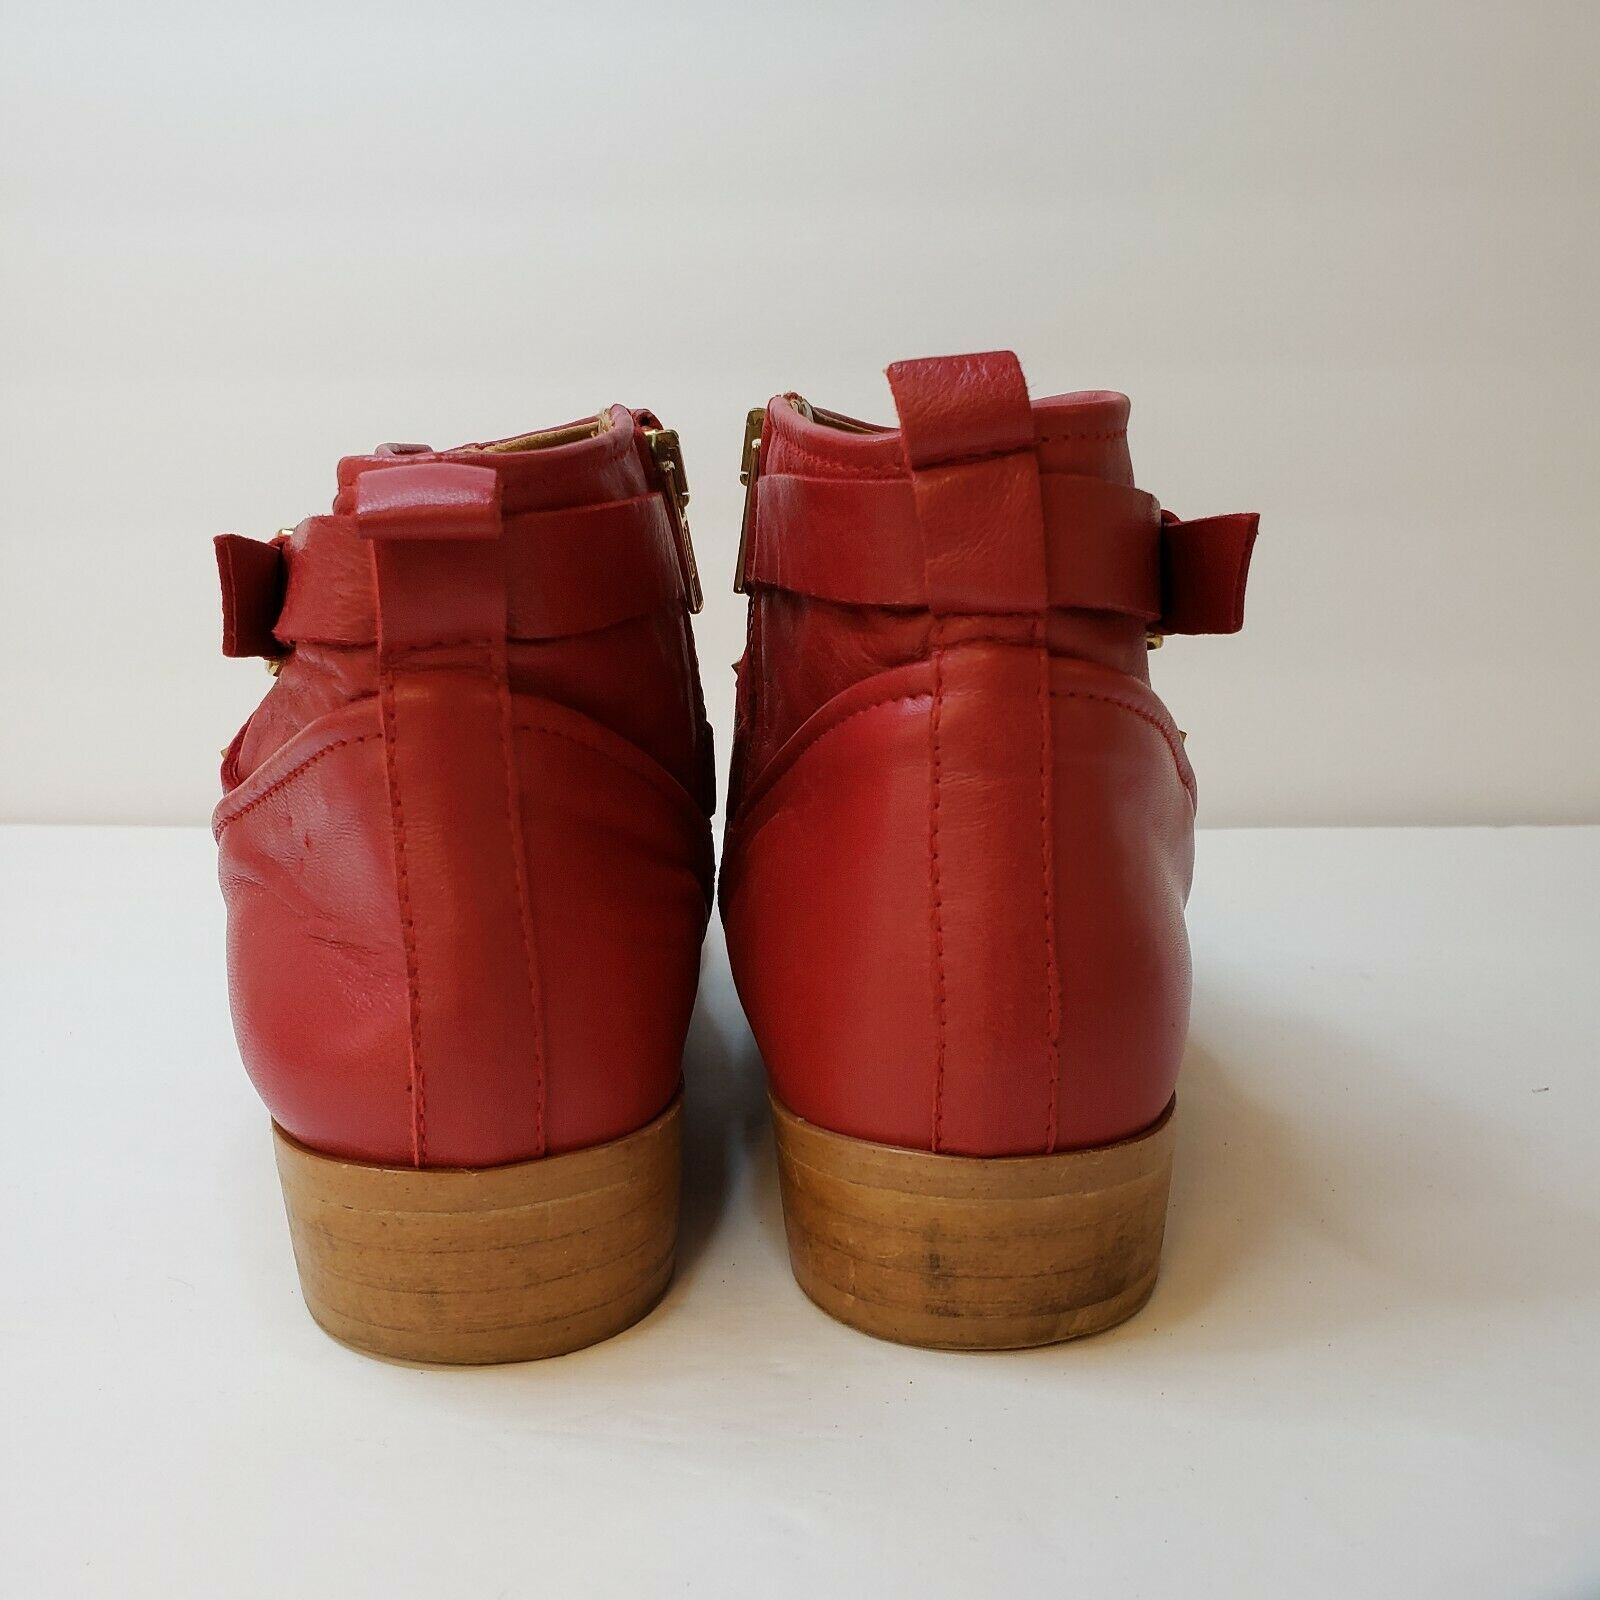 Zara Woman Womens Red Gold Studded Flat Leather Booties Size 9